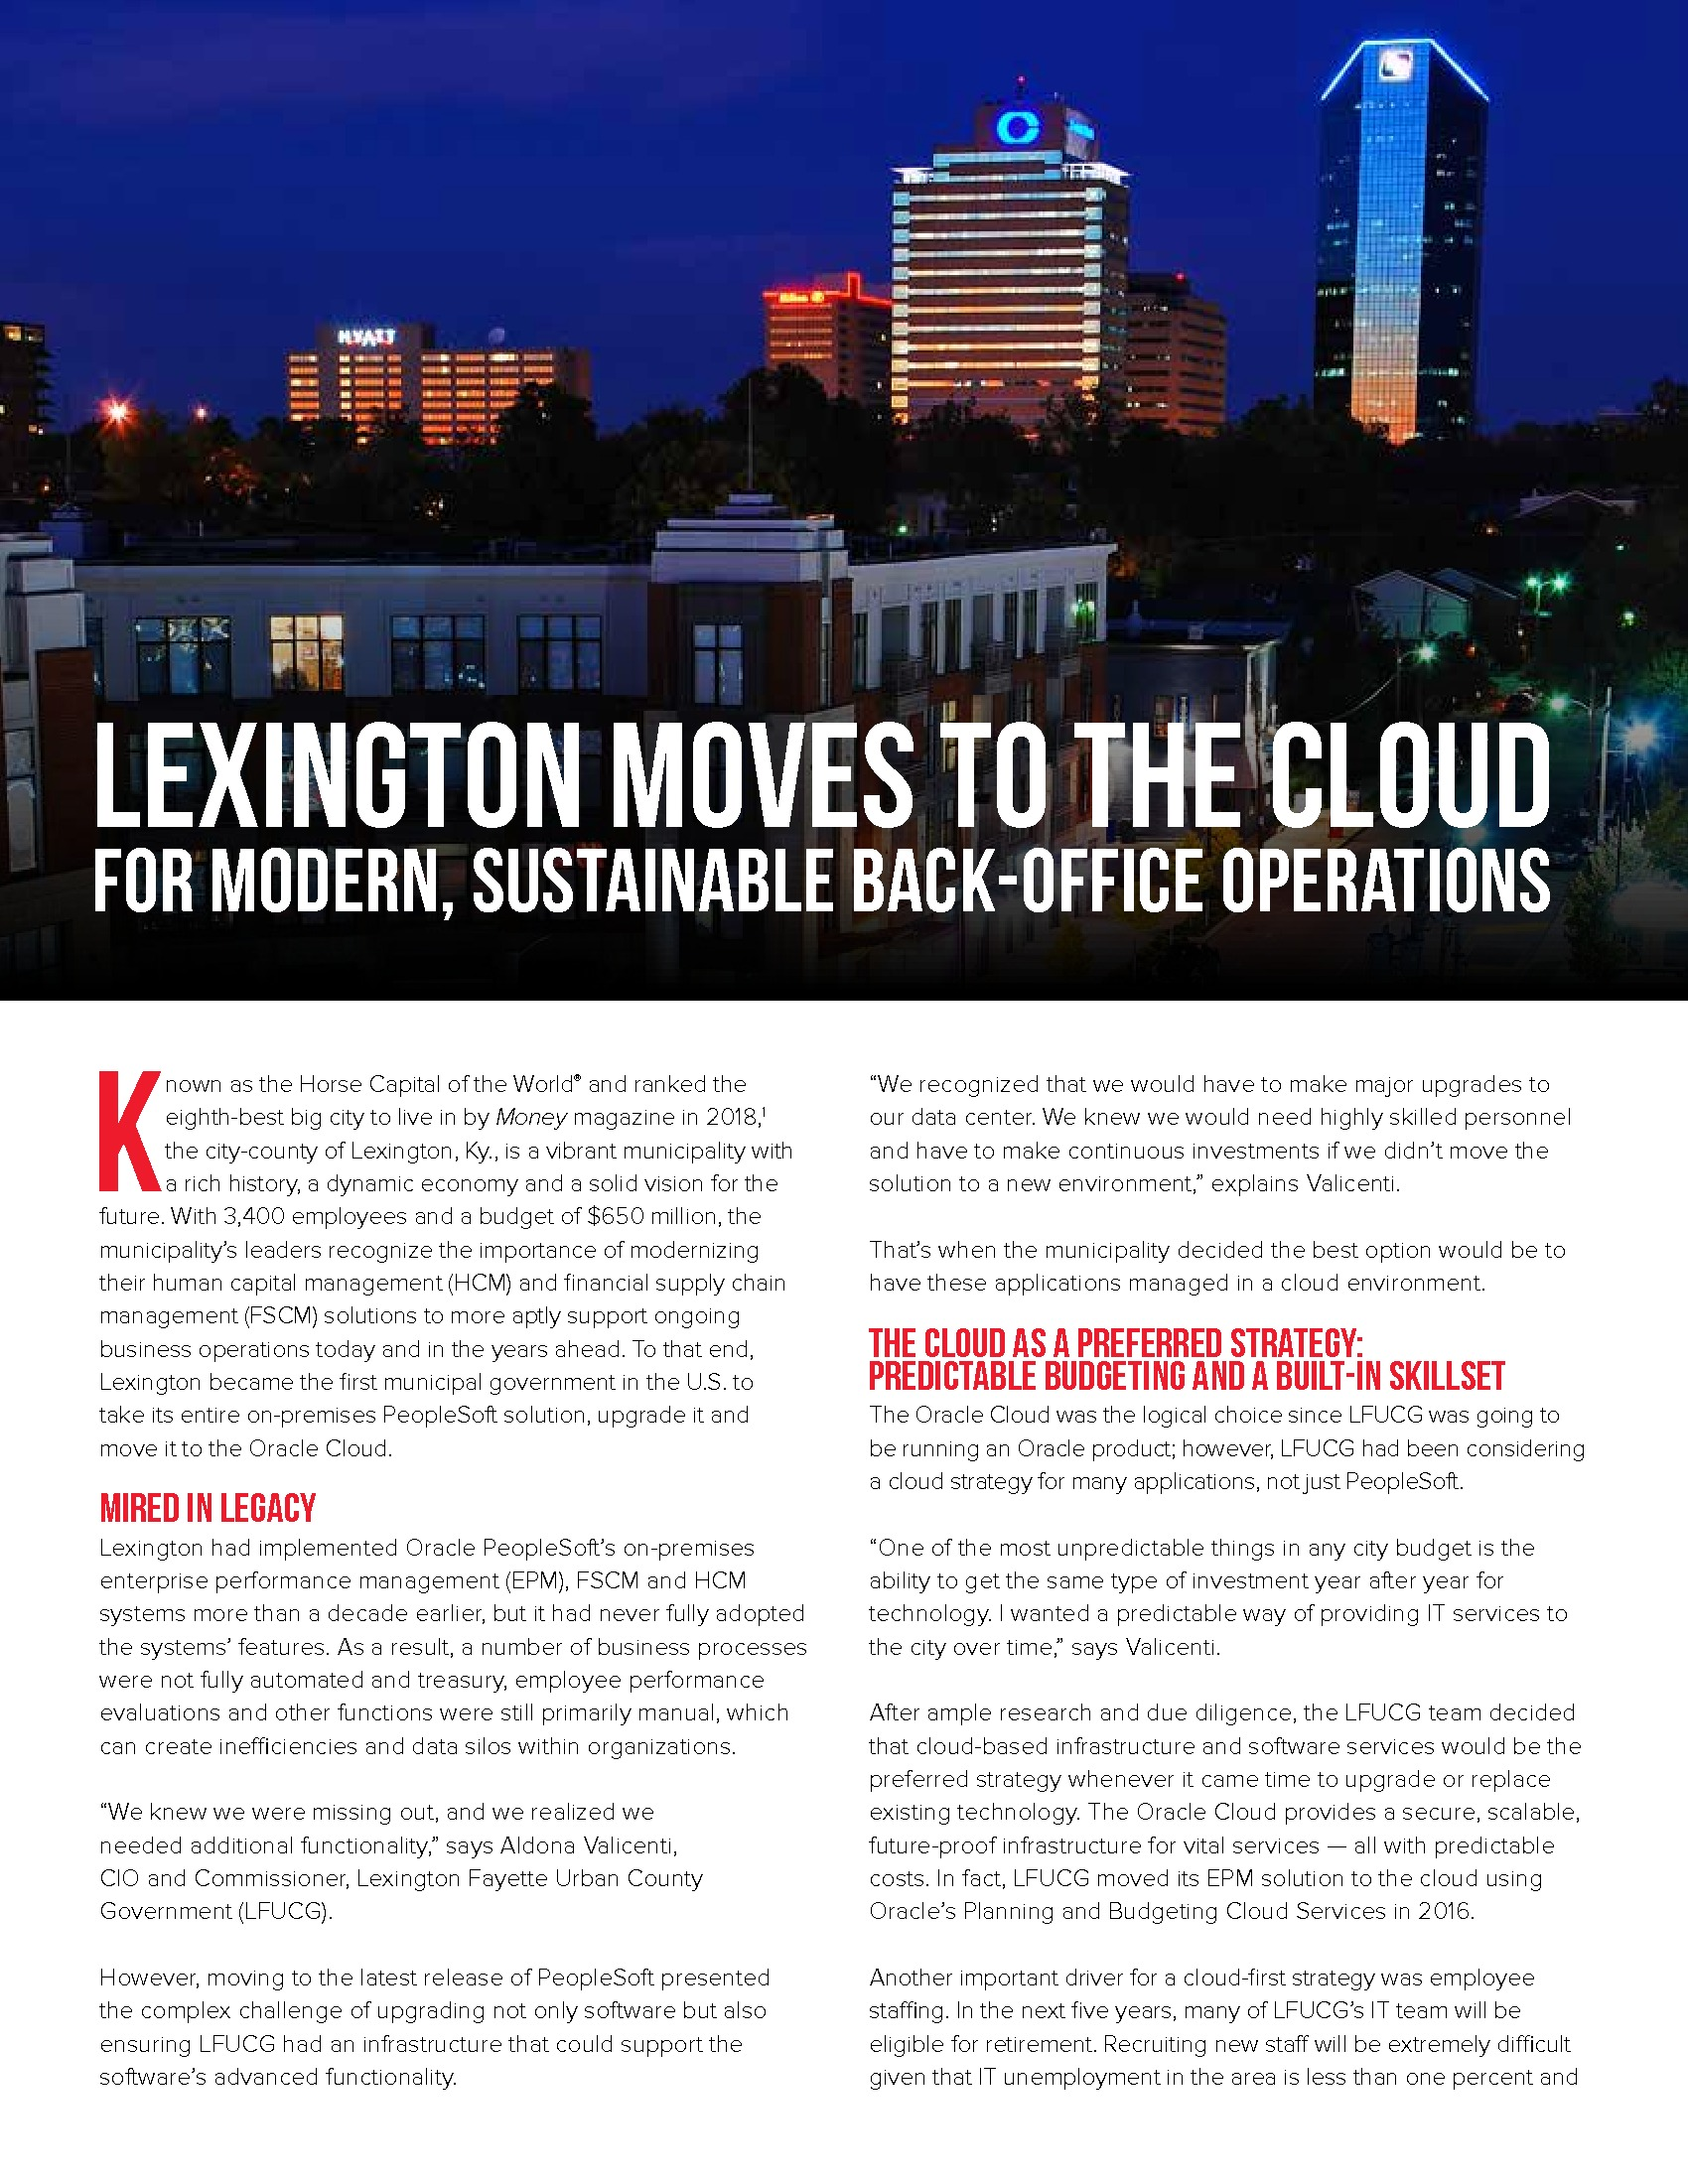 Lexington Moves to the Cloud for Modern, Sustainable Back-Office Operations